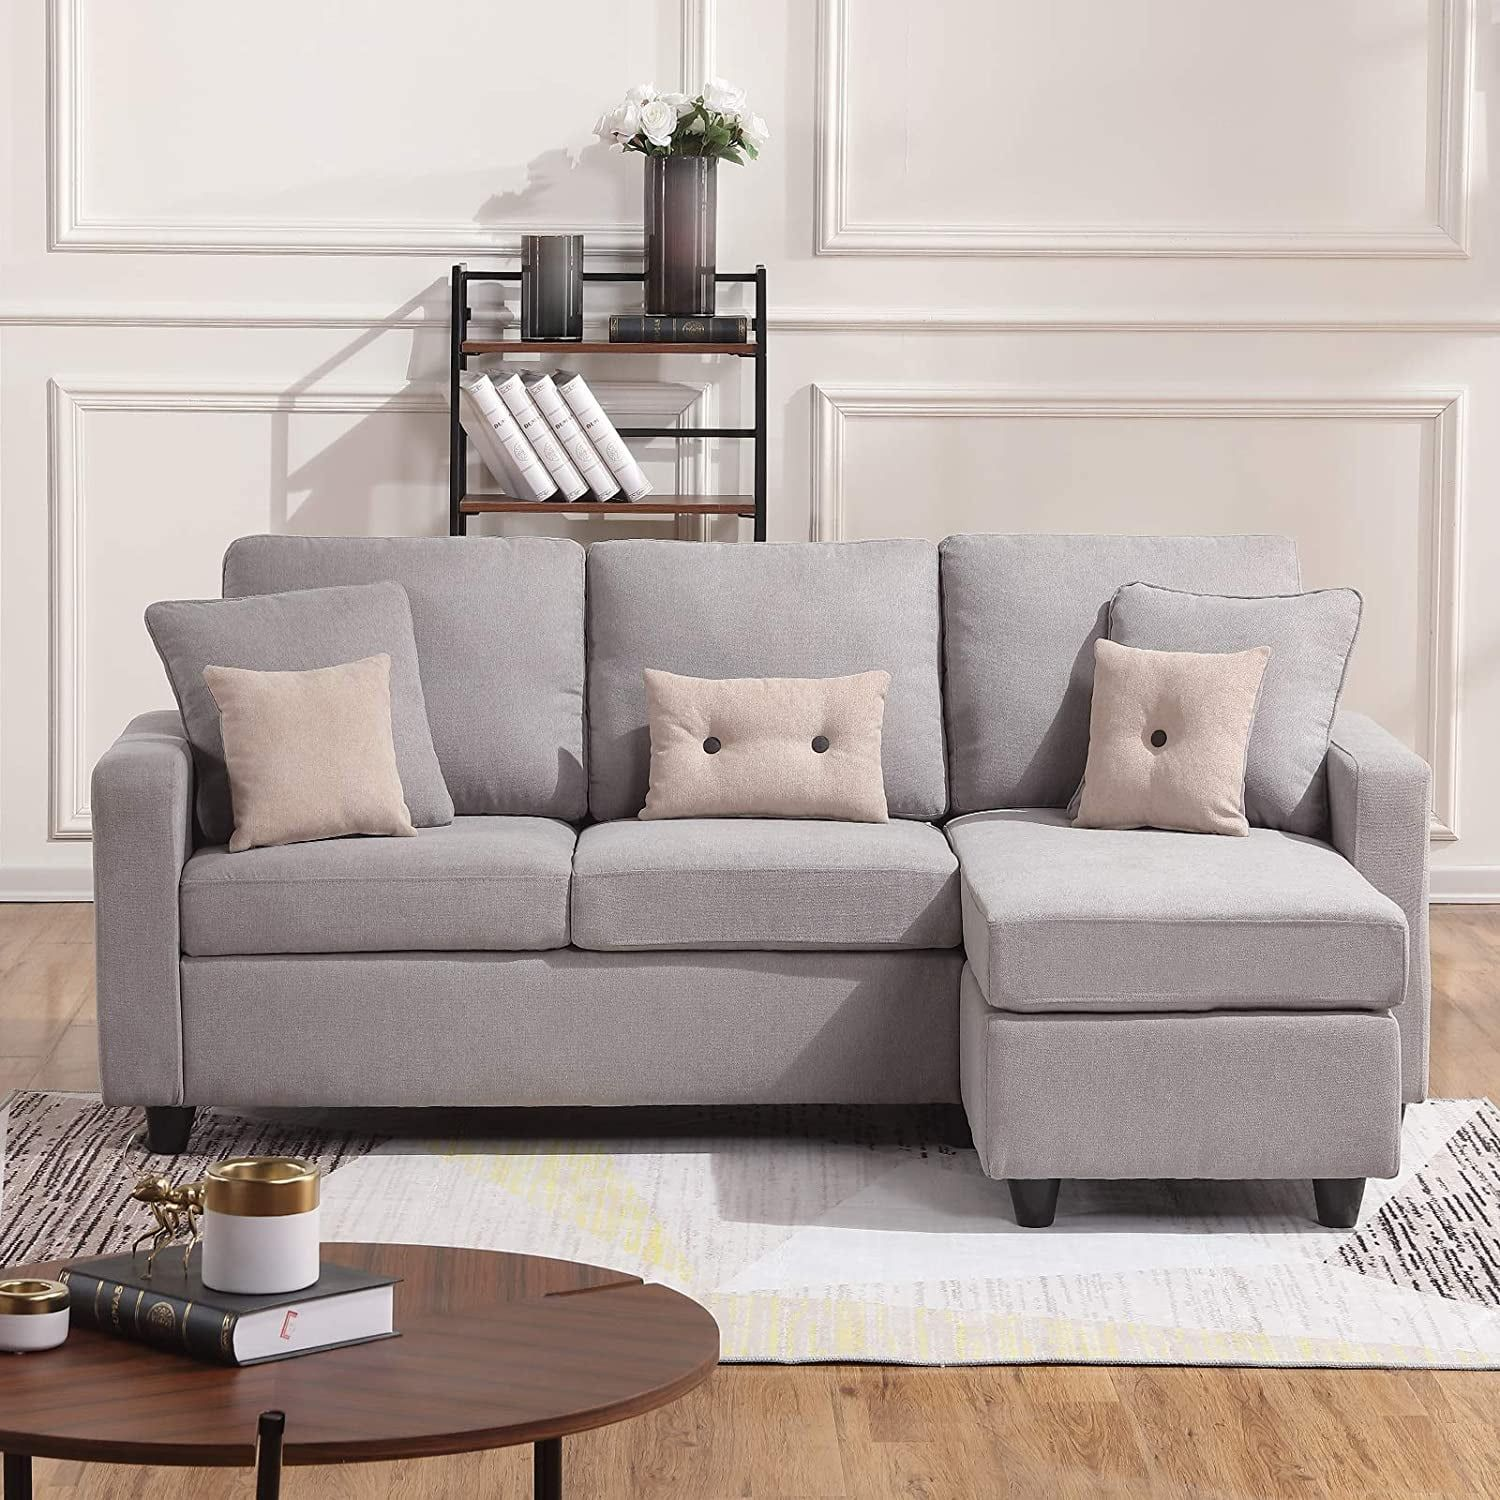 This Comfy Sectional Sofa Also Turns Into A Bed And Fits Perfectly In Small Apartments Couches For Small Spaces Sofas For Small Spaces Living Room Decor Apartment